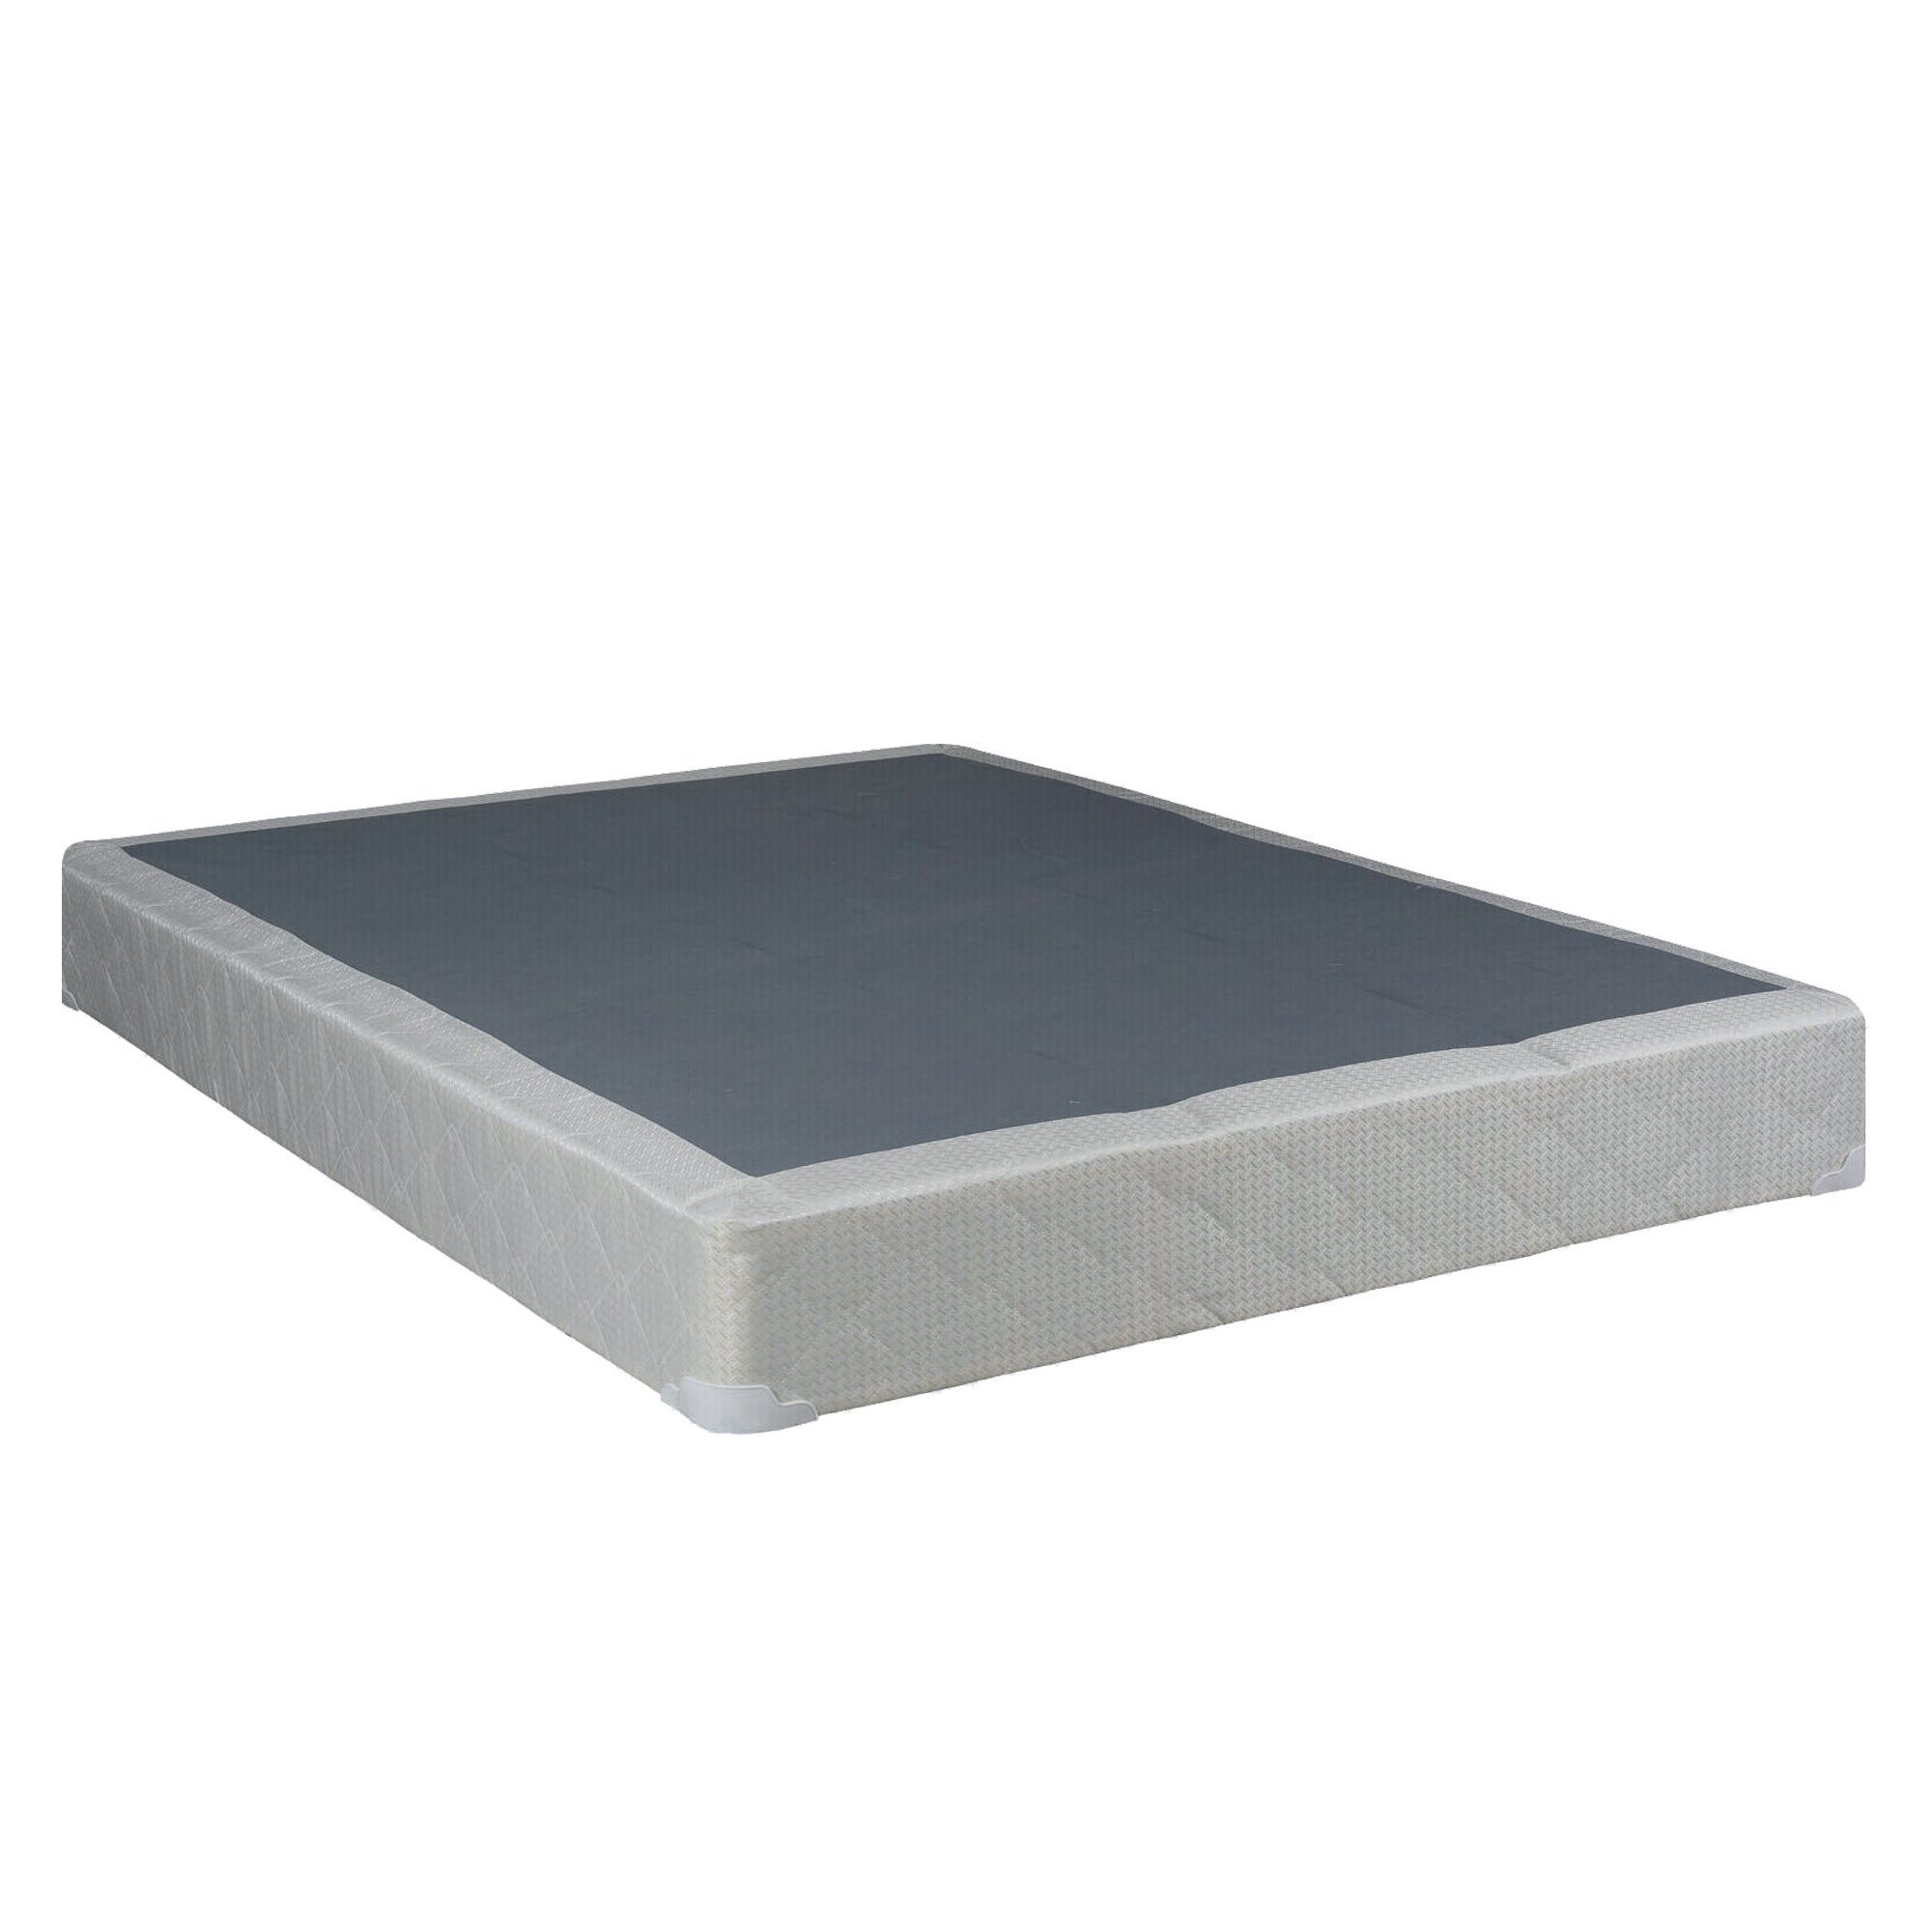 Springs Coil 8-inch Split King-size Assembled Box Spring,...